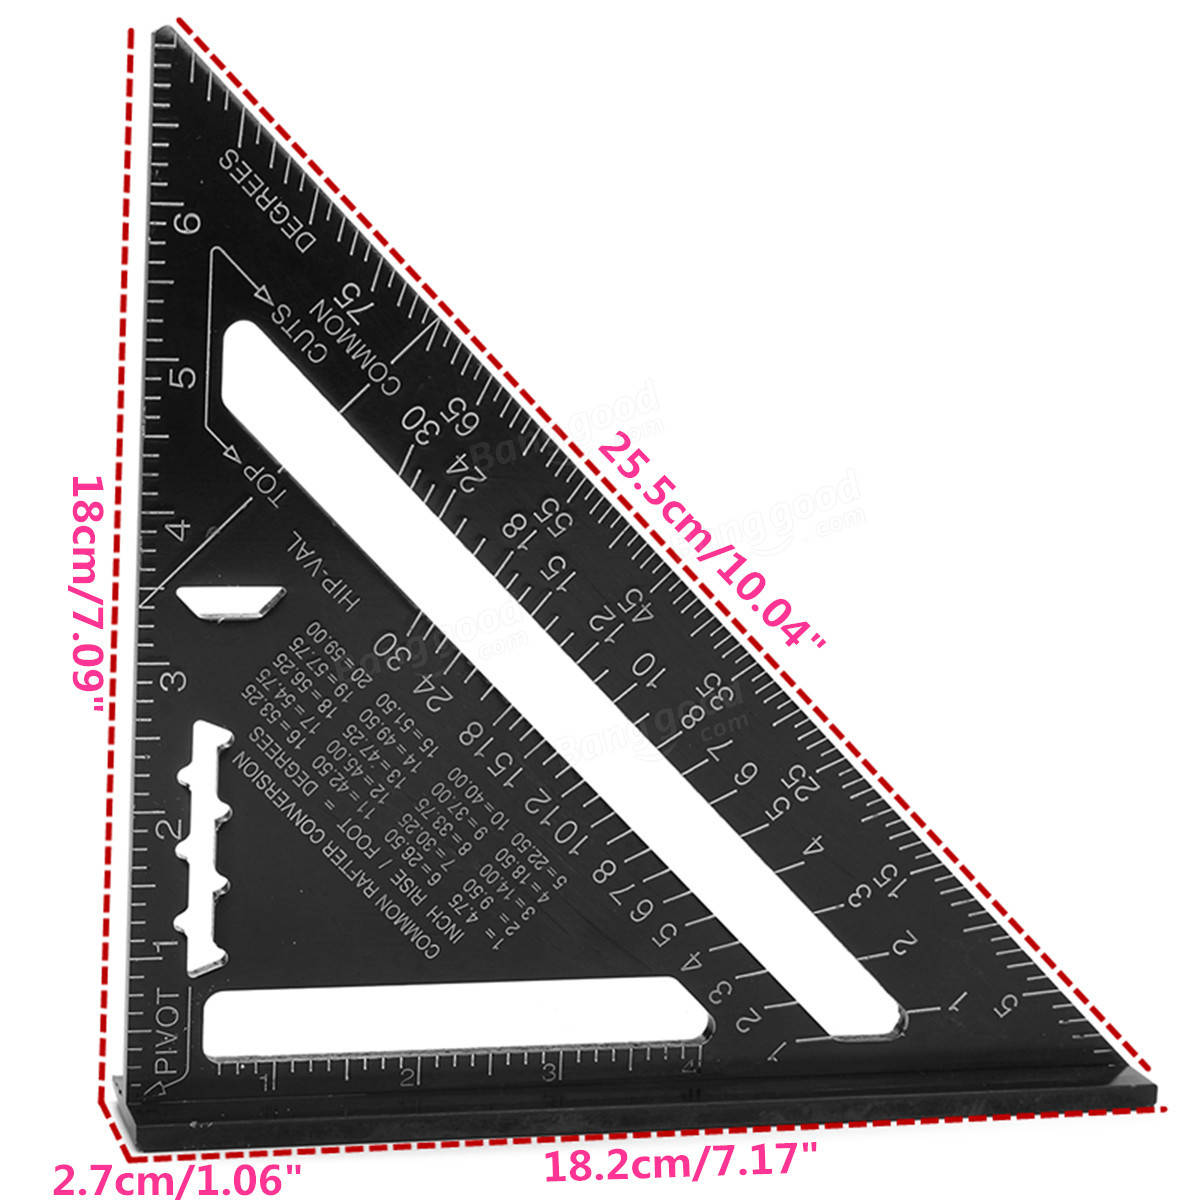 7inch Aluminum Alloy Triangle Angle Protractor Speed Square Measuring Ruler Miter Metric/Inch